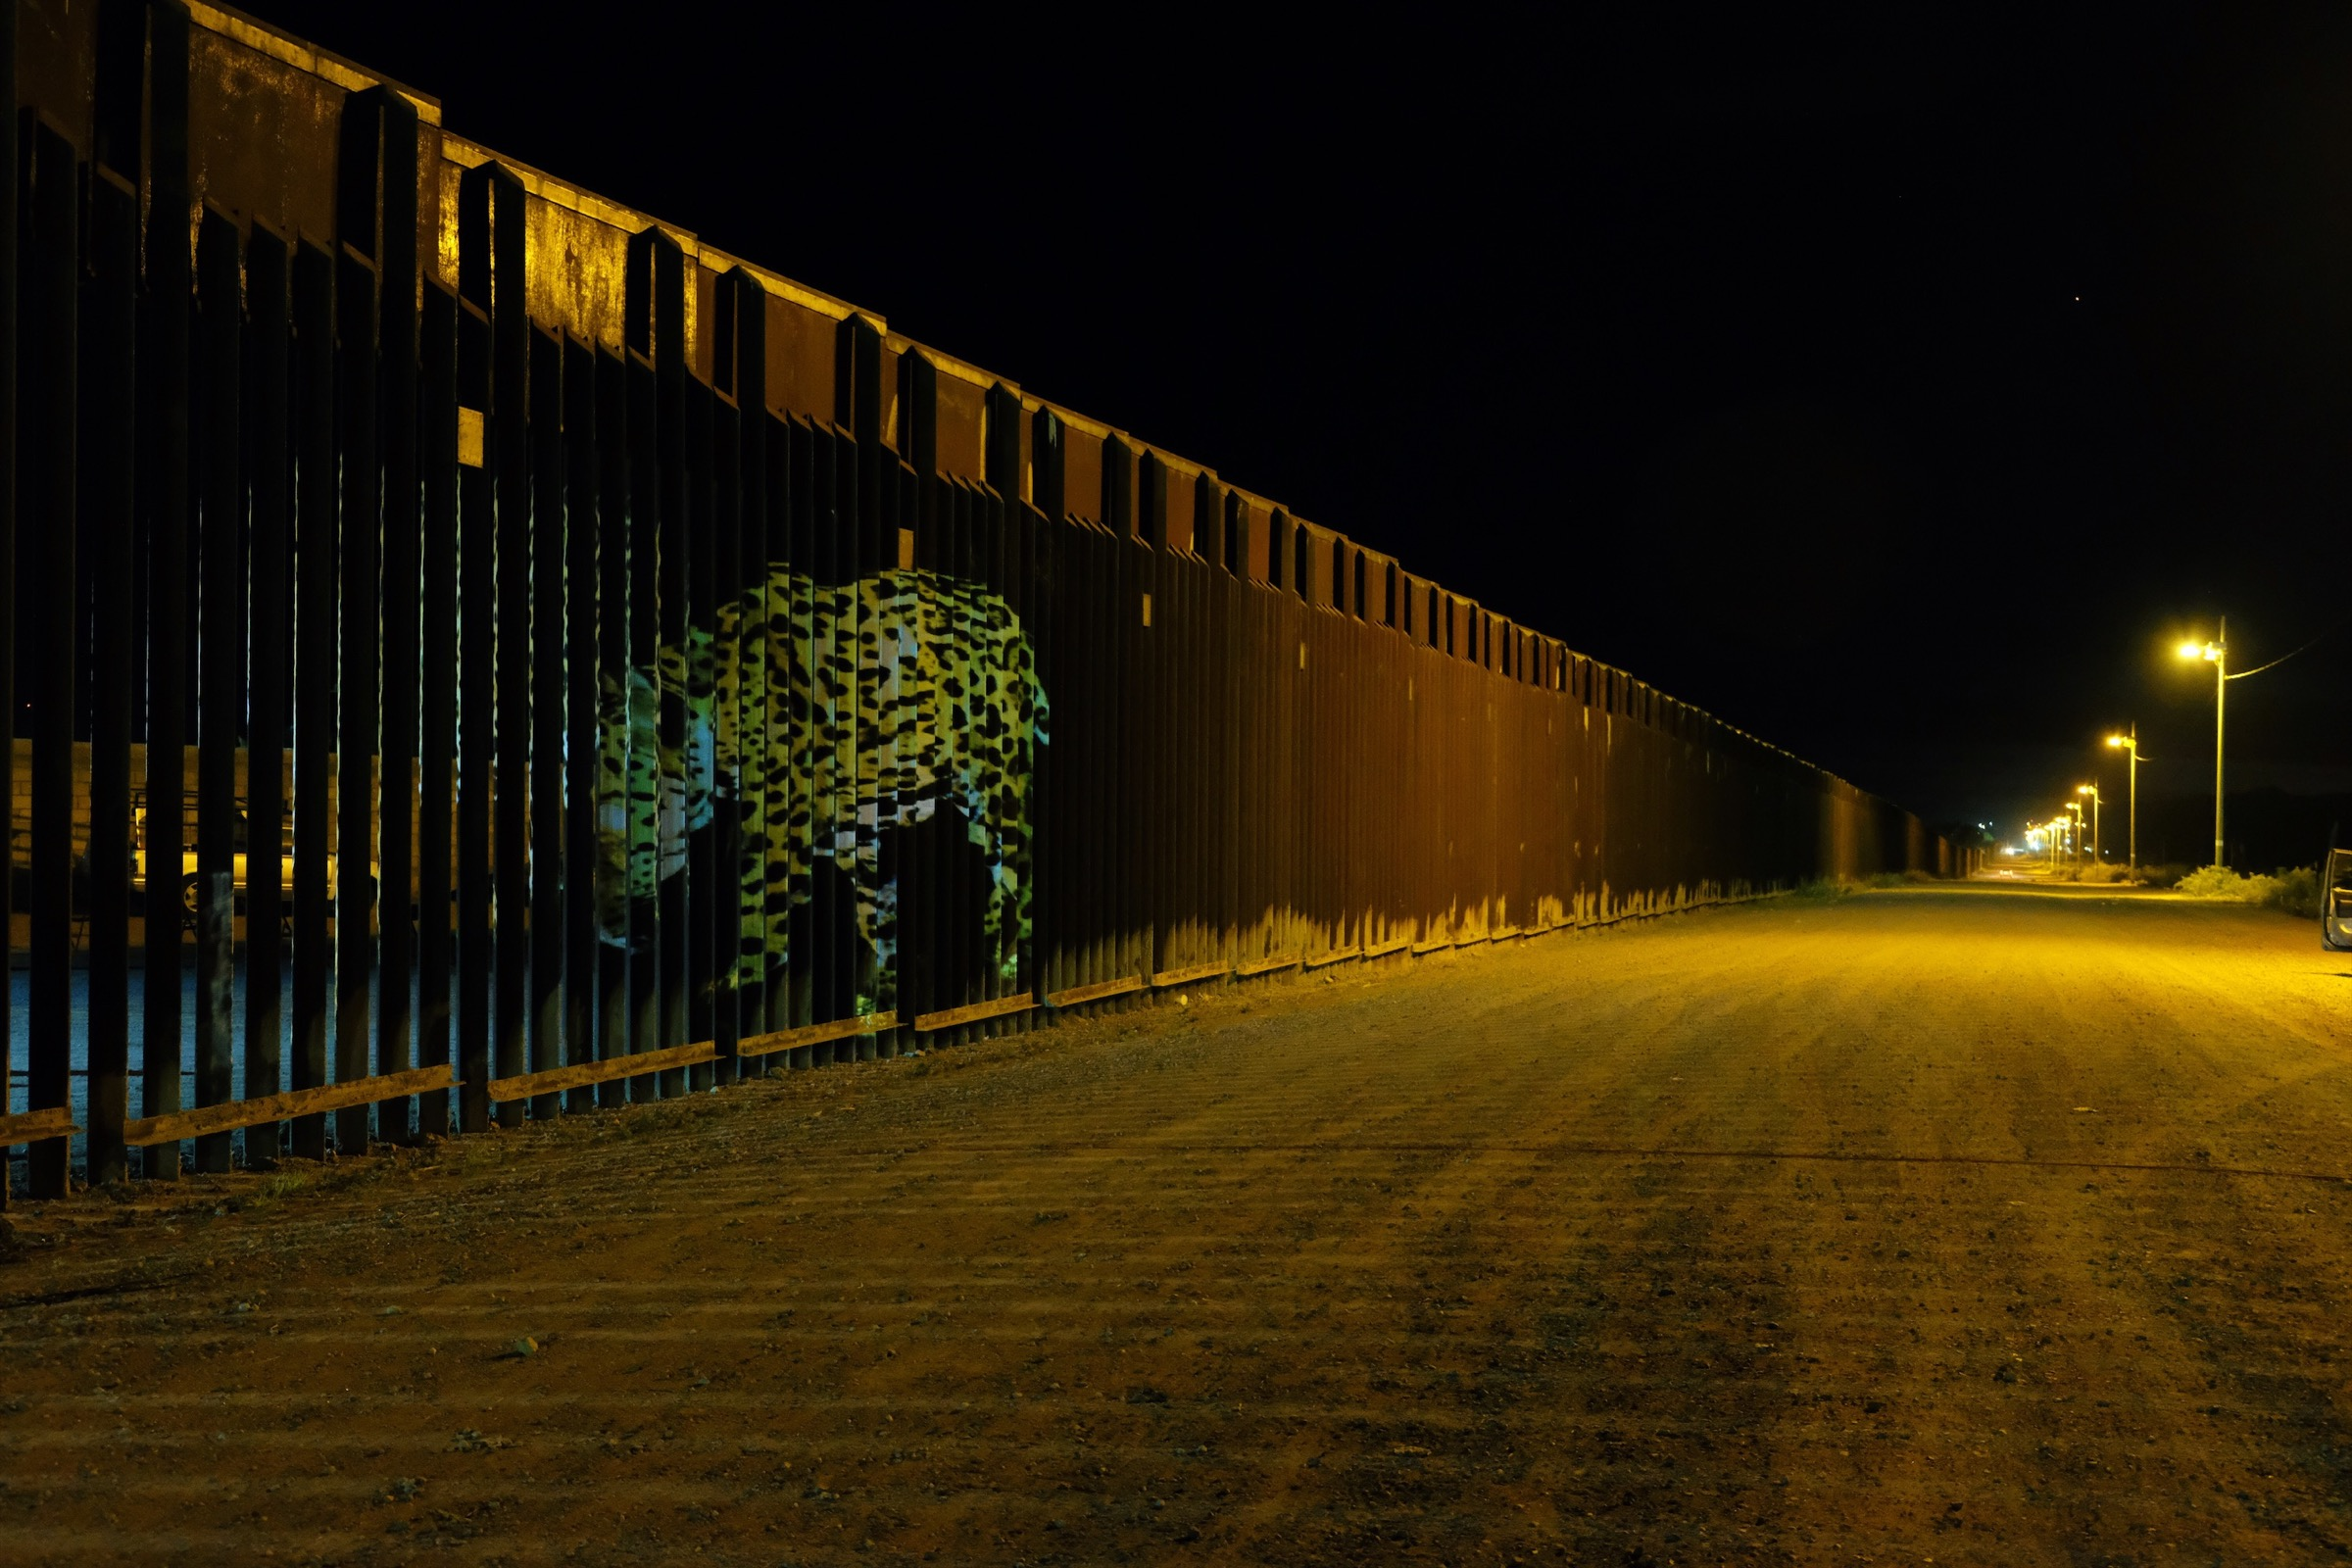 An photo of a wild jaguar captured by a camera trap is projected onto the border fence between Douglas, Arizona and Agua Prieta, Mexico during an event organized by the Northern Jaguar Project. Photograph by Julian Smith